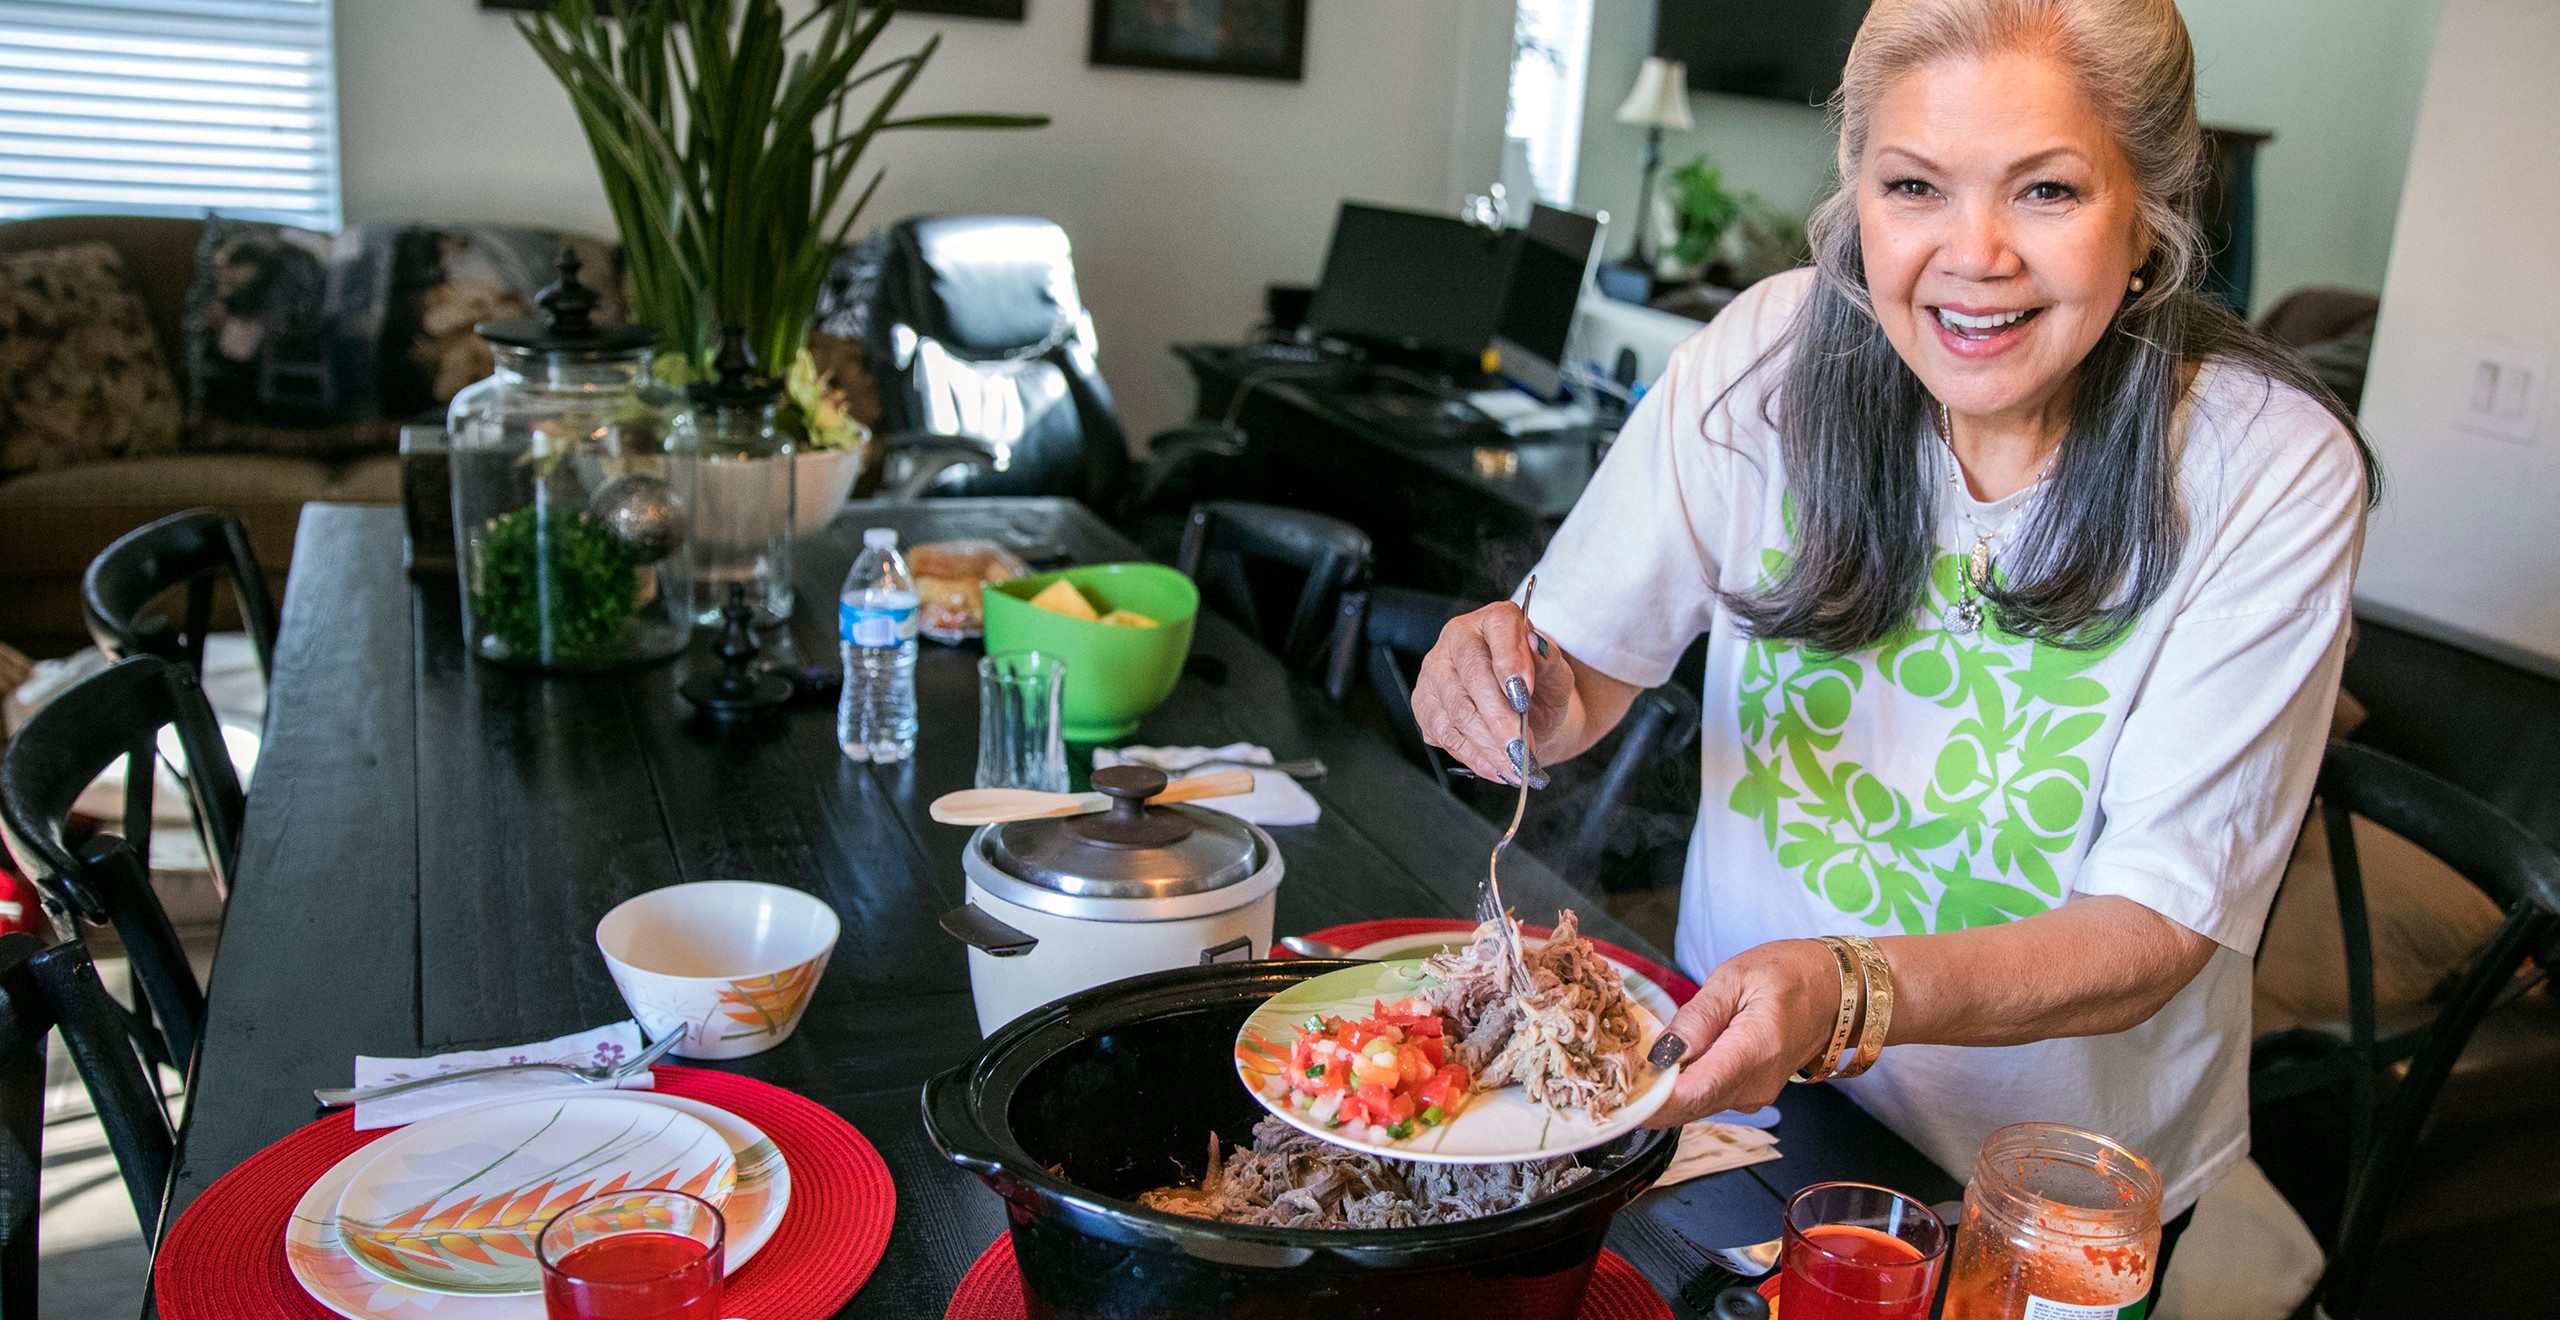 Haunani looks up, smiling, while dishing up some kalua pork on a dinner plate at the dining room table. She is a beautiful middle-aged woman with long gray hair half pinned up, round cheeks, and eyes that smile.